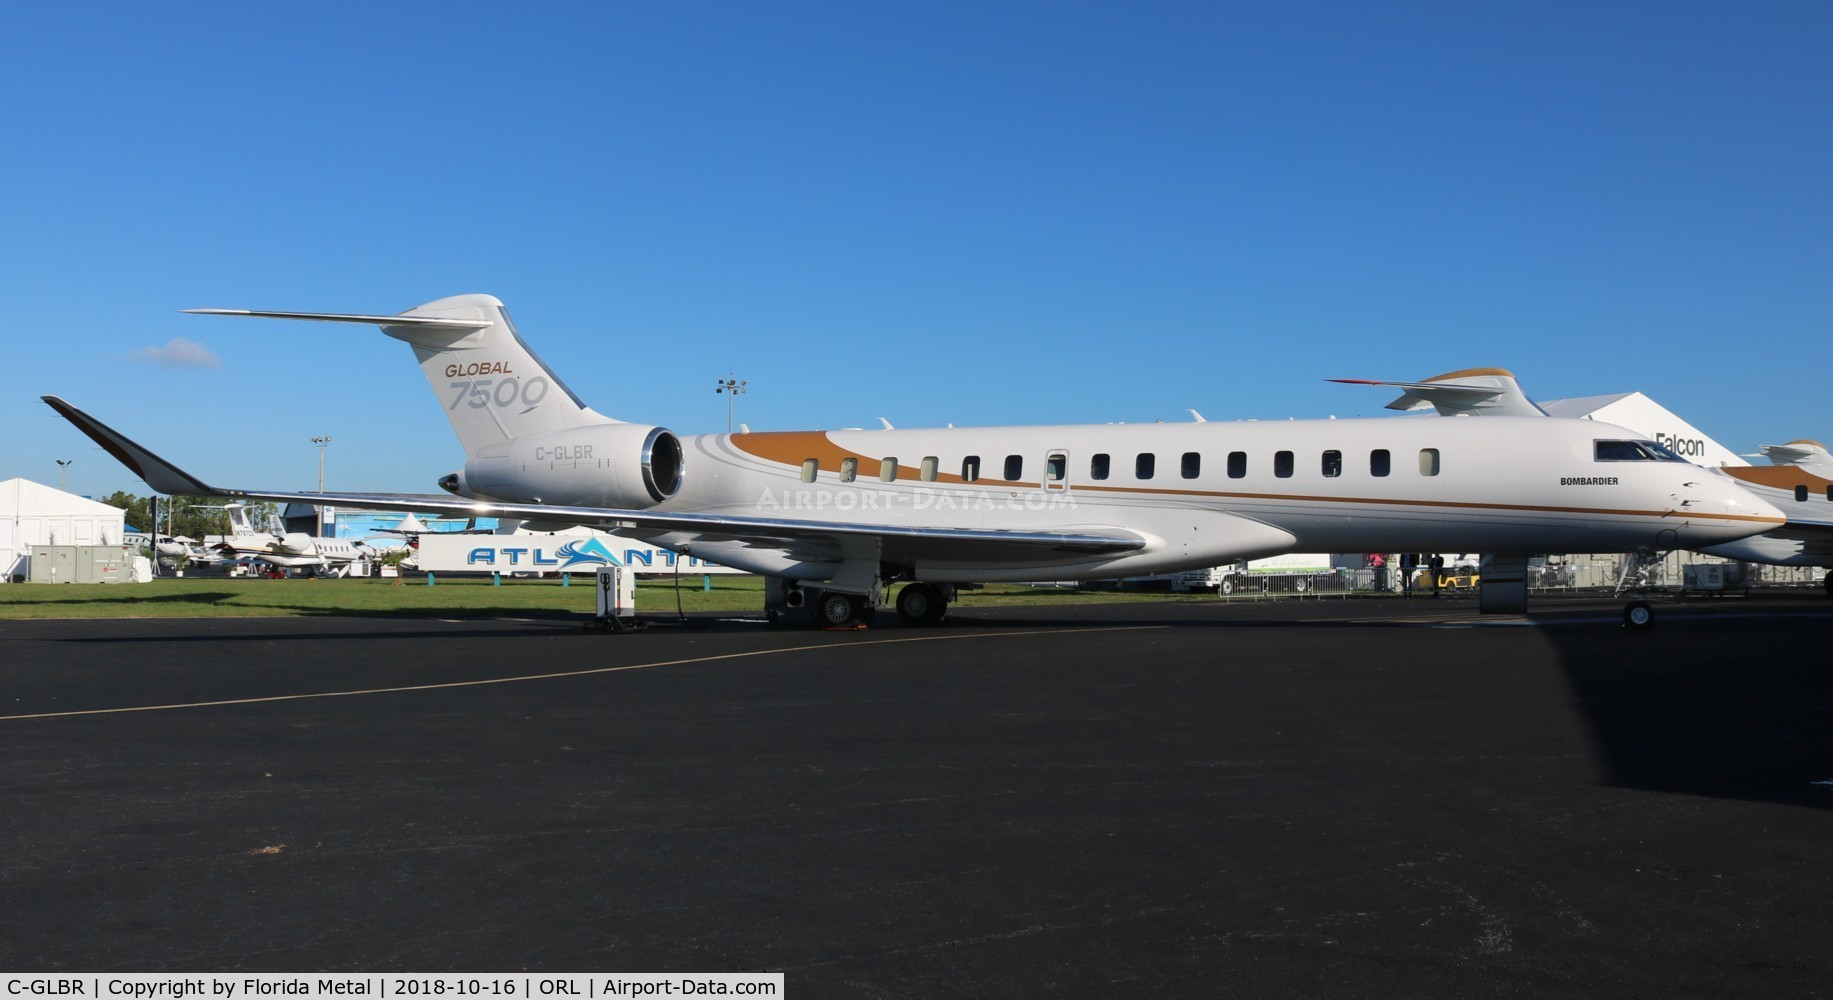 C-GLBR, 2017 Bombardier BD-700-2A12 Global 7000 C/N 70004, Global 7500